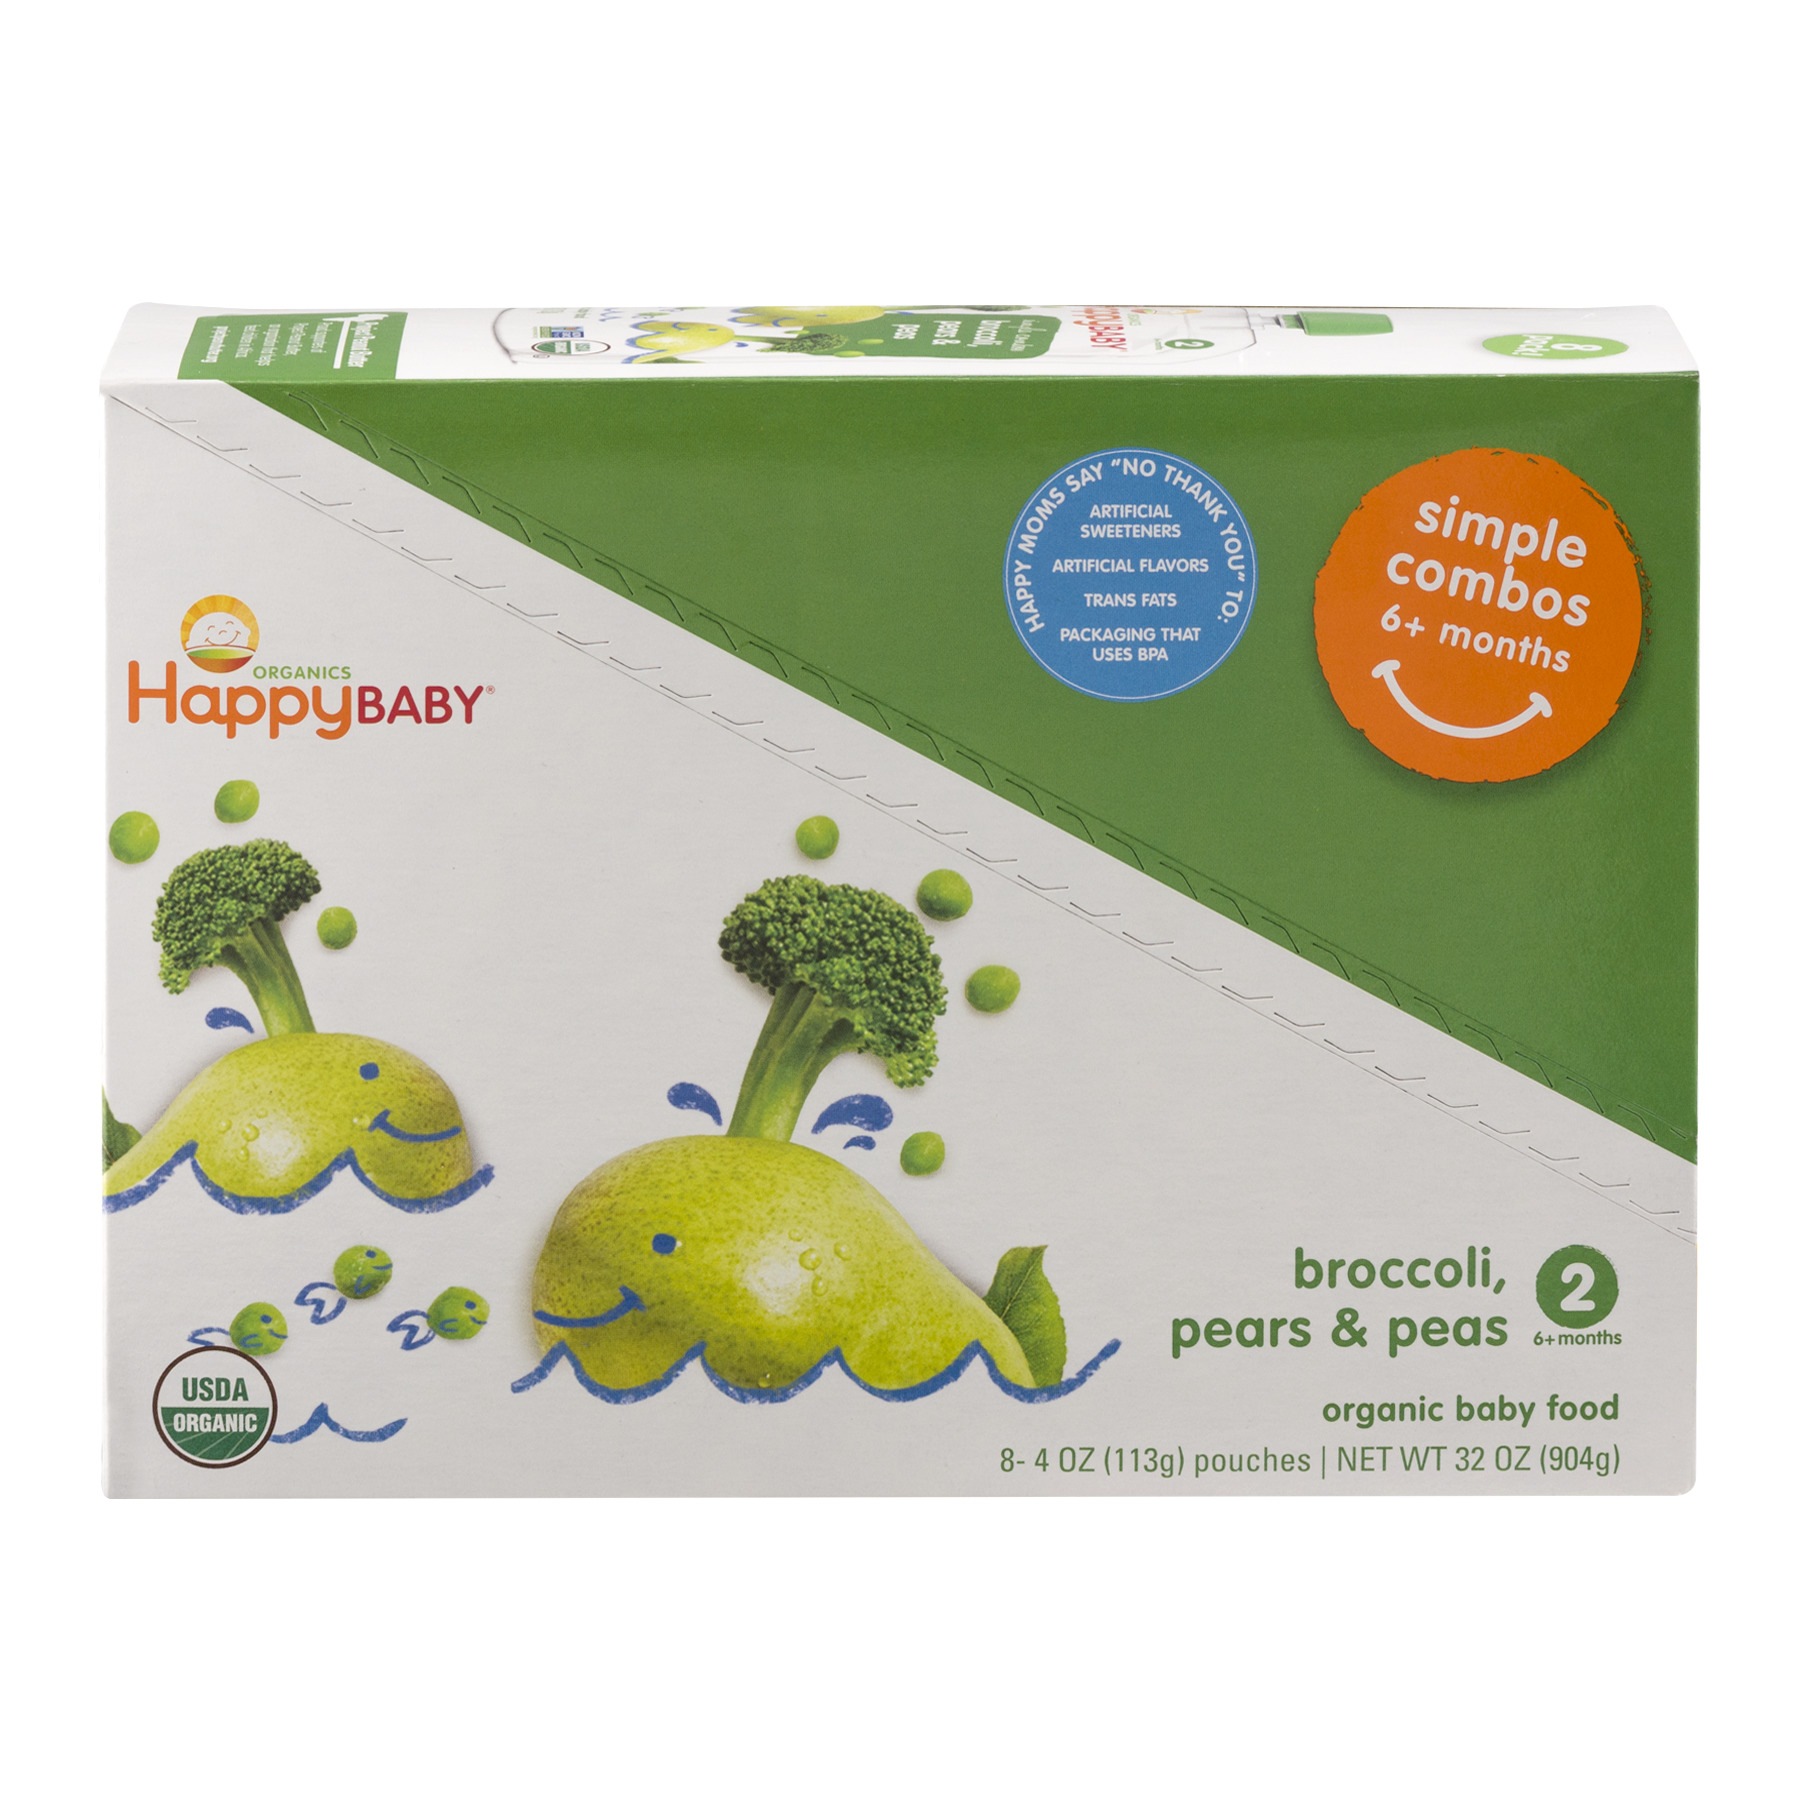 (8 Pack) Happy Baby Simple Combos, Stage 2, Organic Baby Food, Pears, Peas & Broccoli – 4 oz